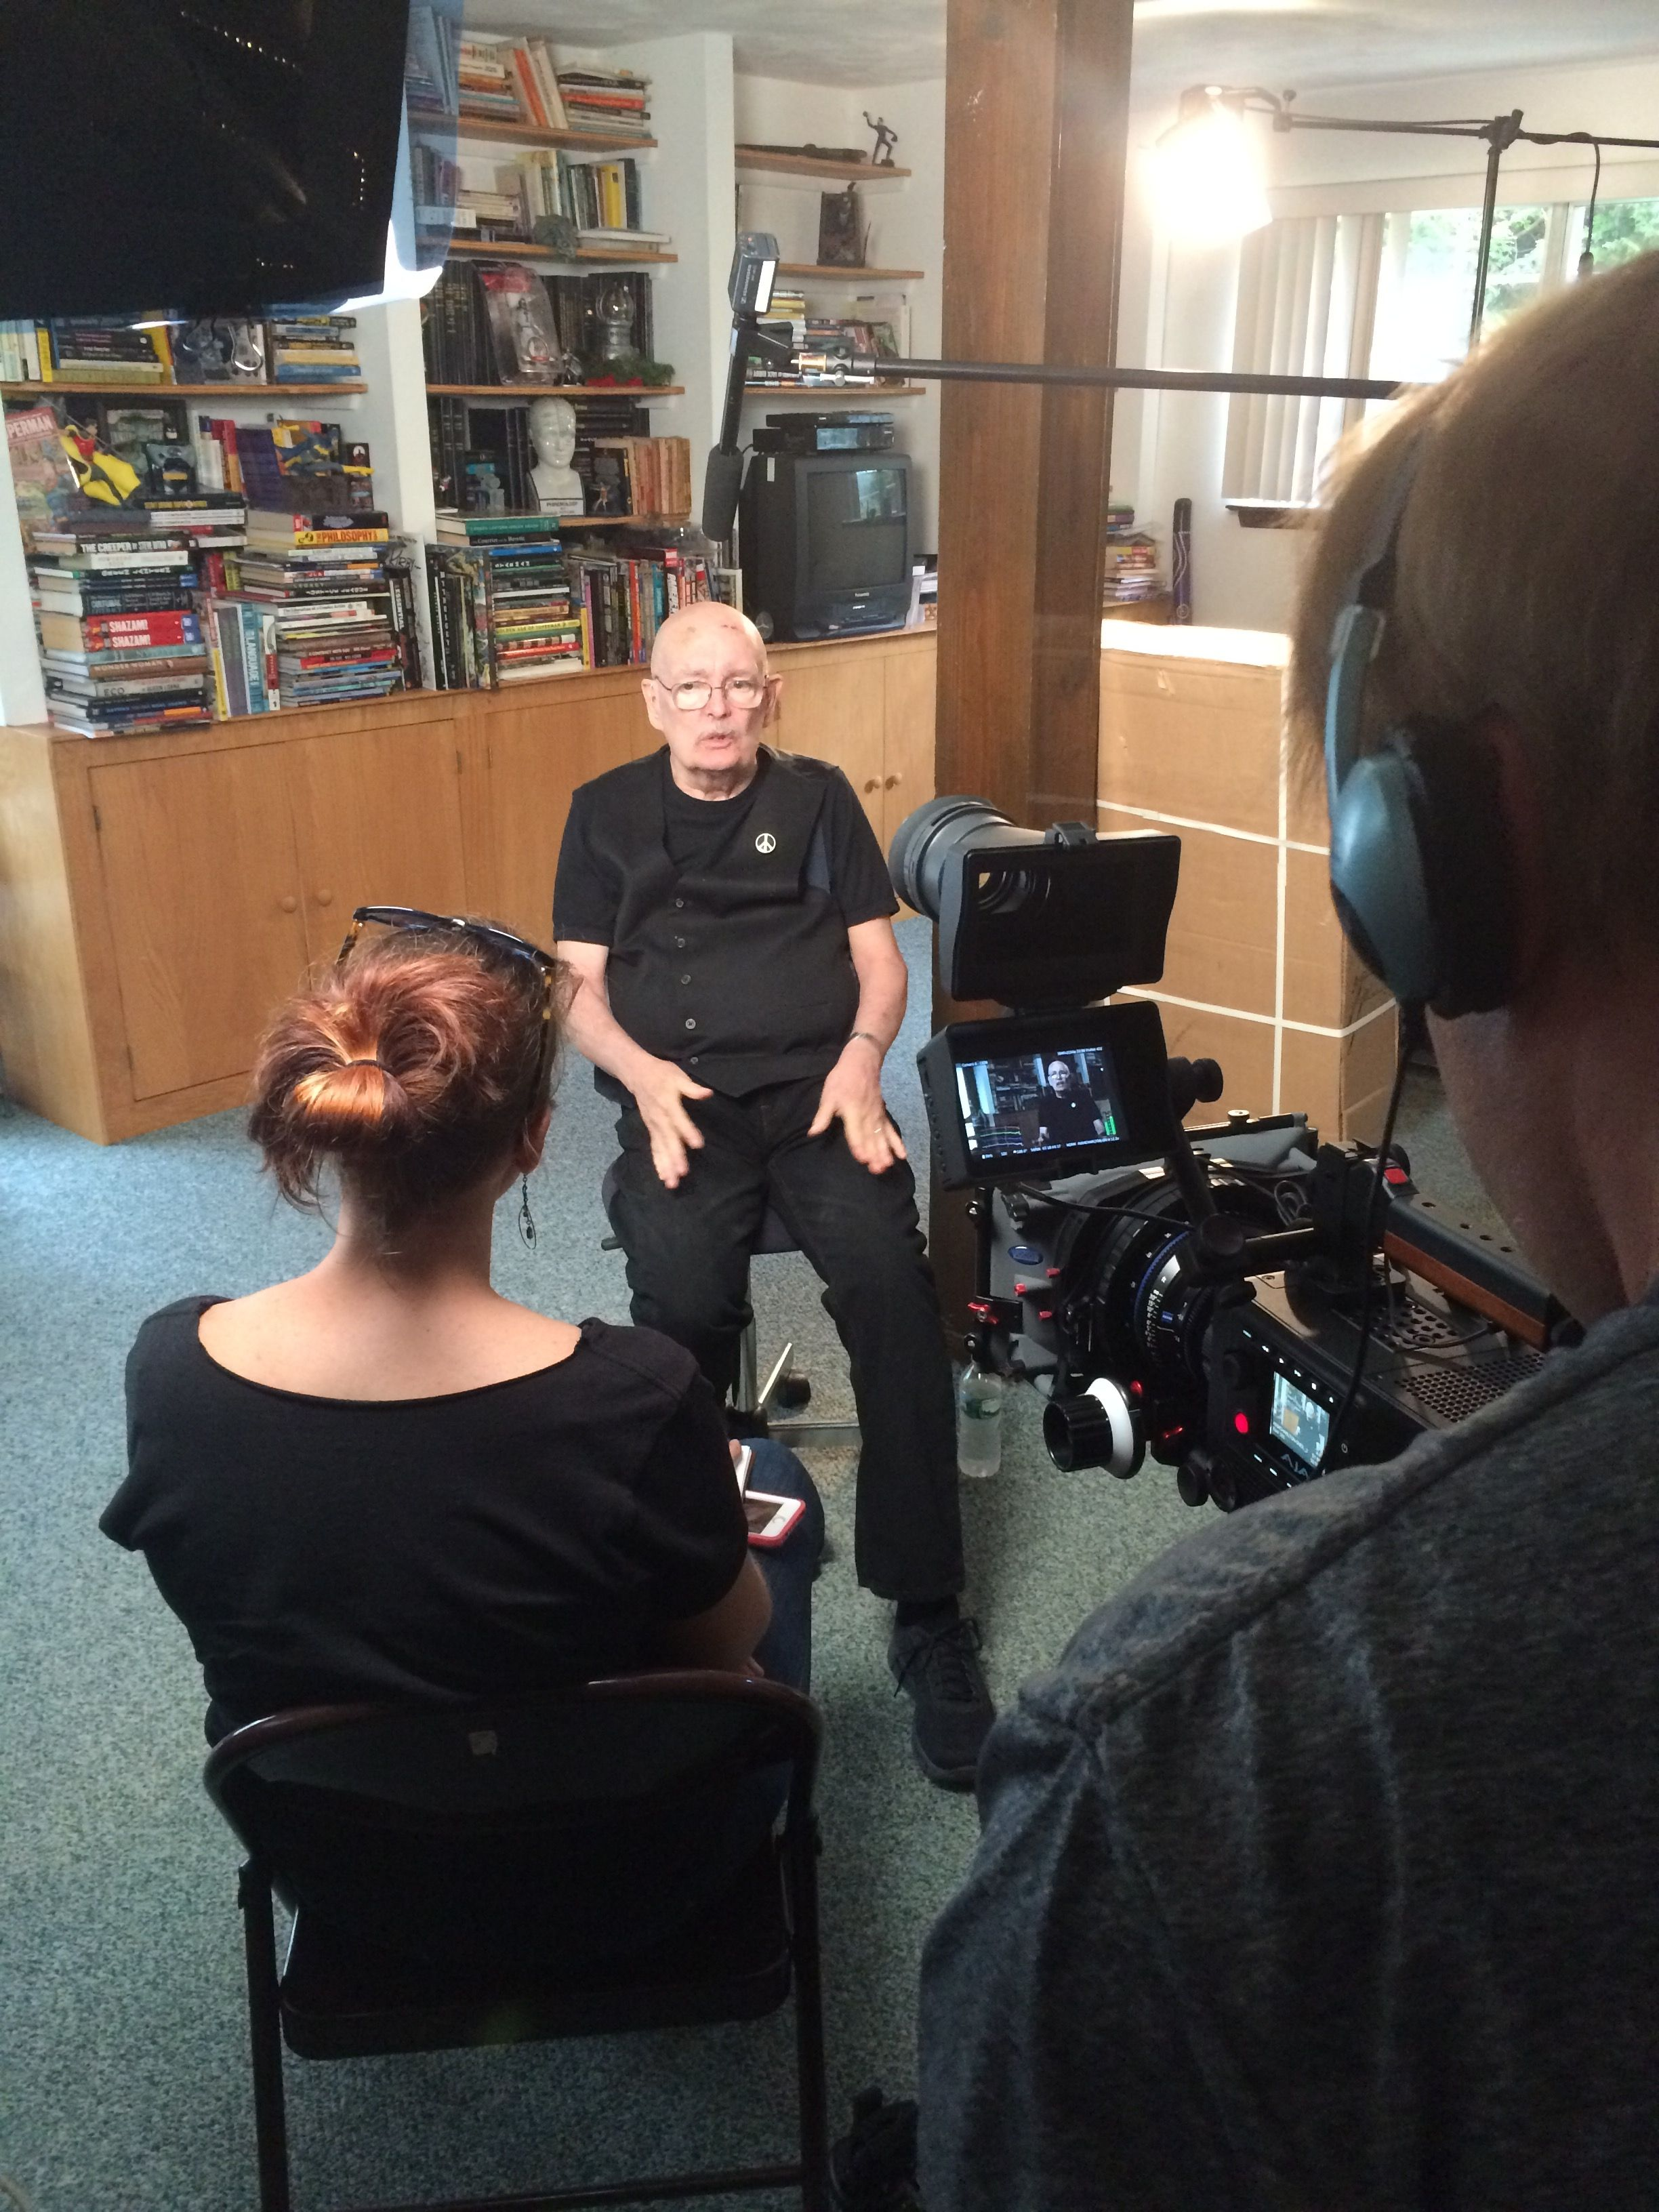 BTS from our Denny O'Neil interview for Charlton Comics: The Movie